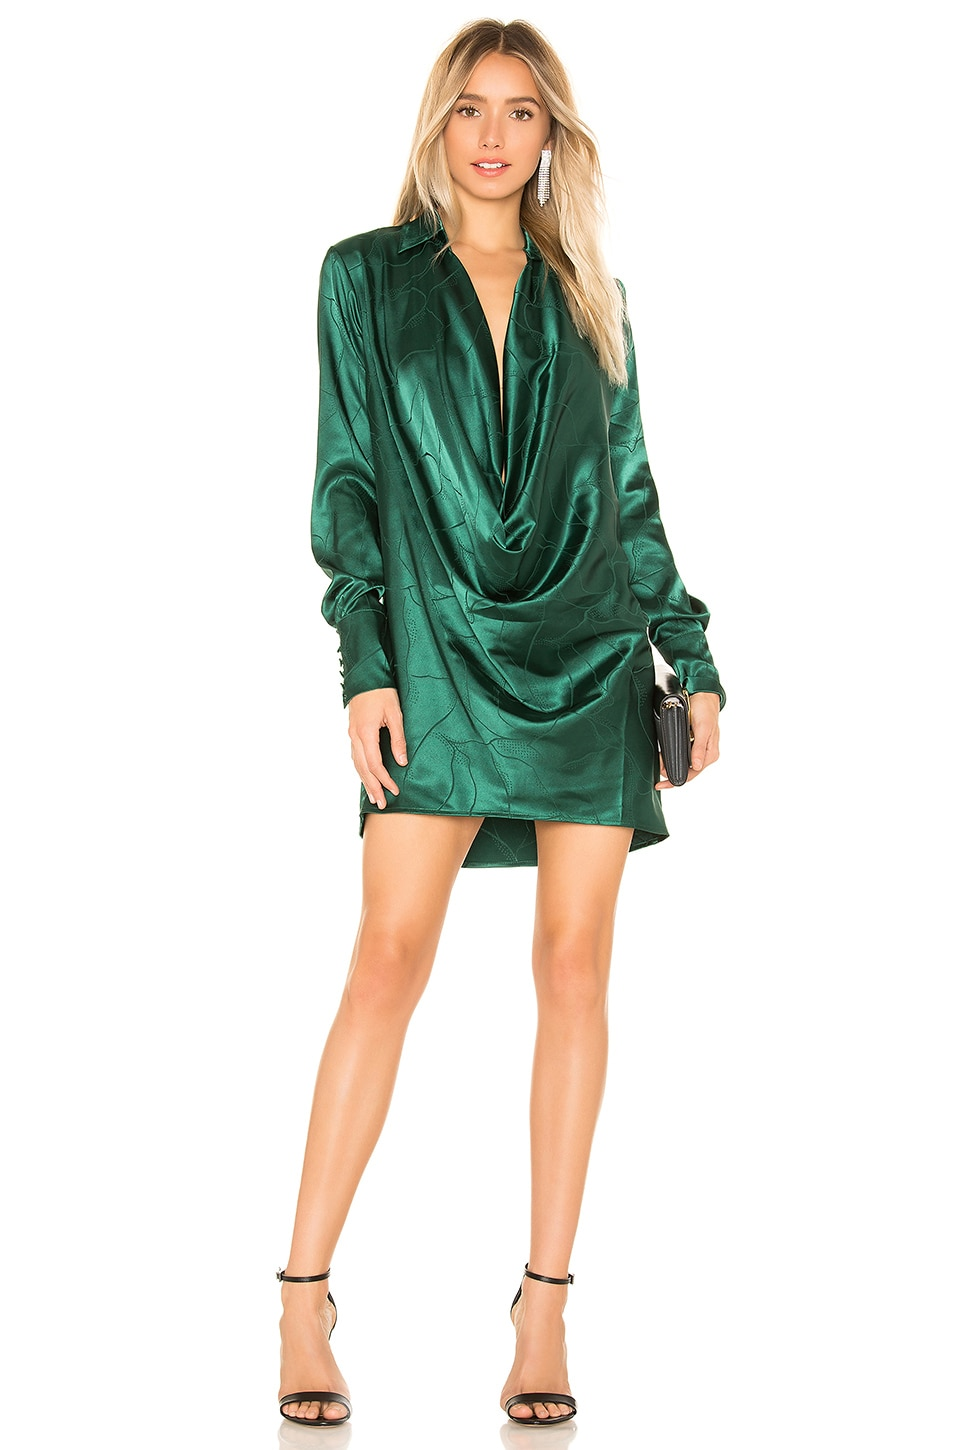 L'Academie The Terri Mini Dress in Rainforest Green